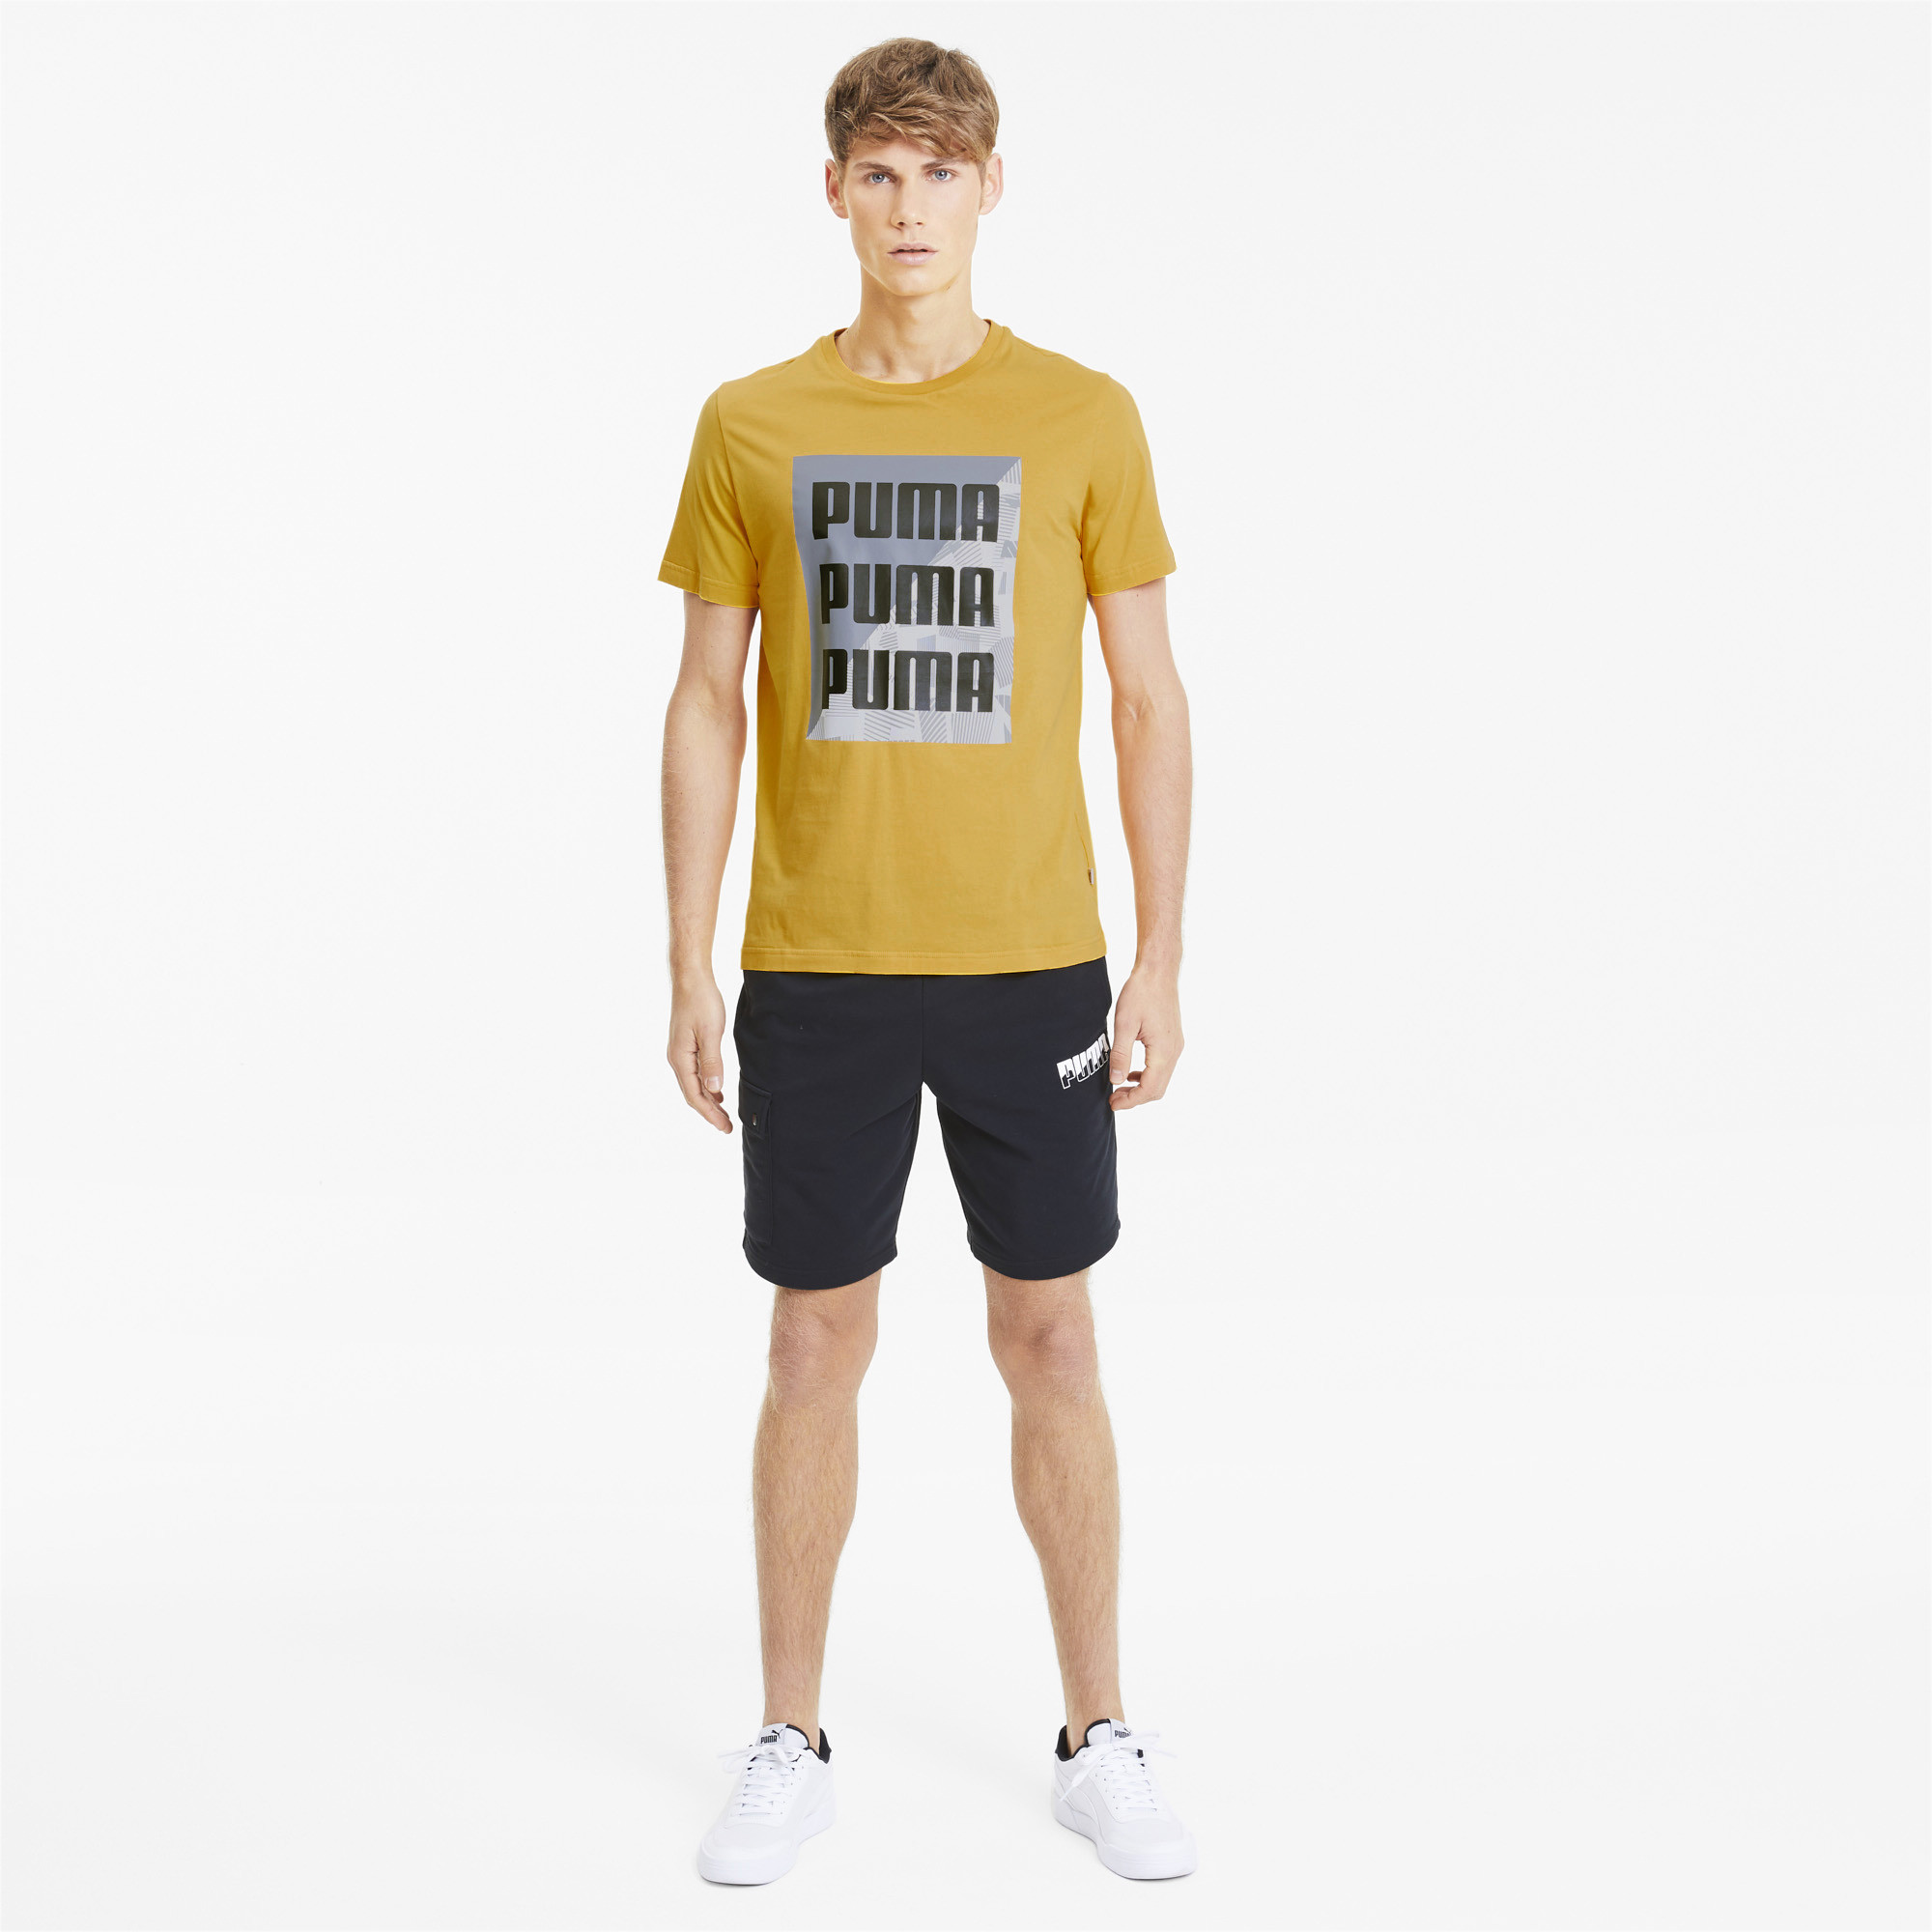 PUMA-Men-039-s-Summer-Print-Graphic-Tee thumbnail 11